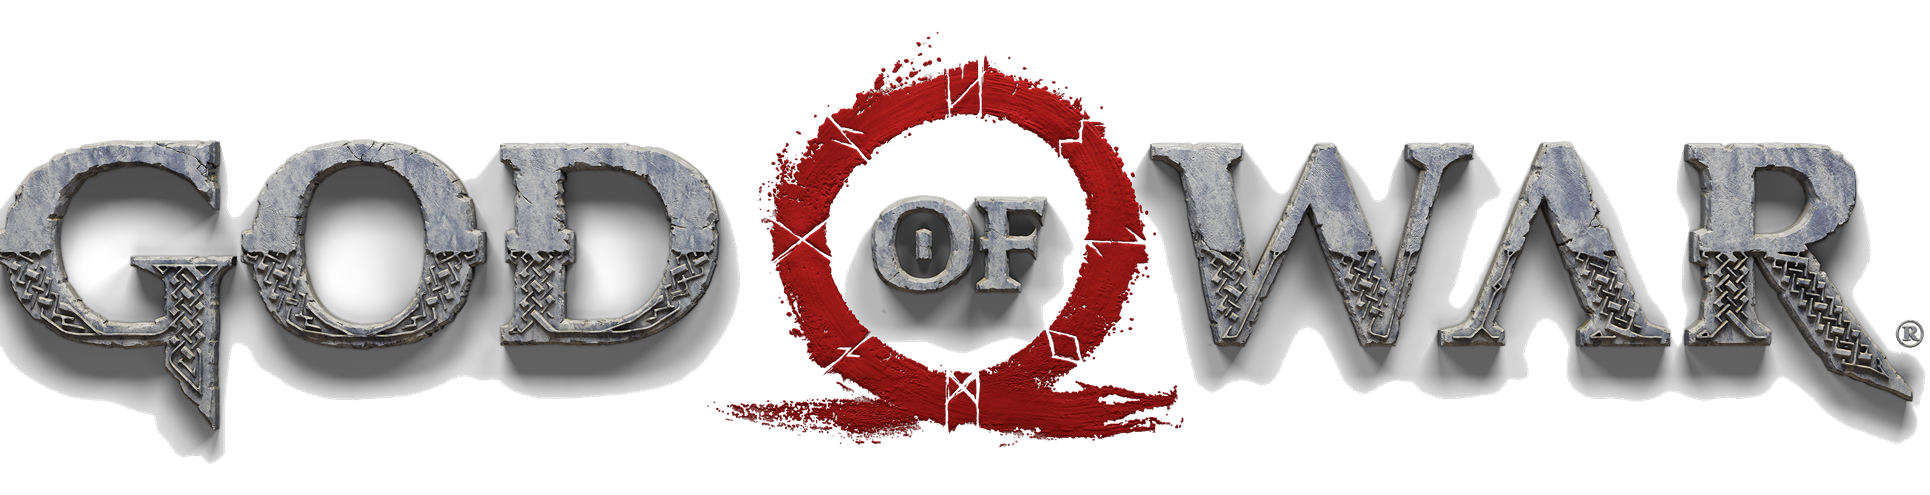 God-of-War-Logo-PNG-Image